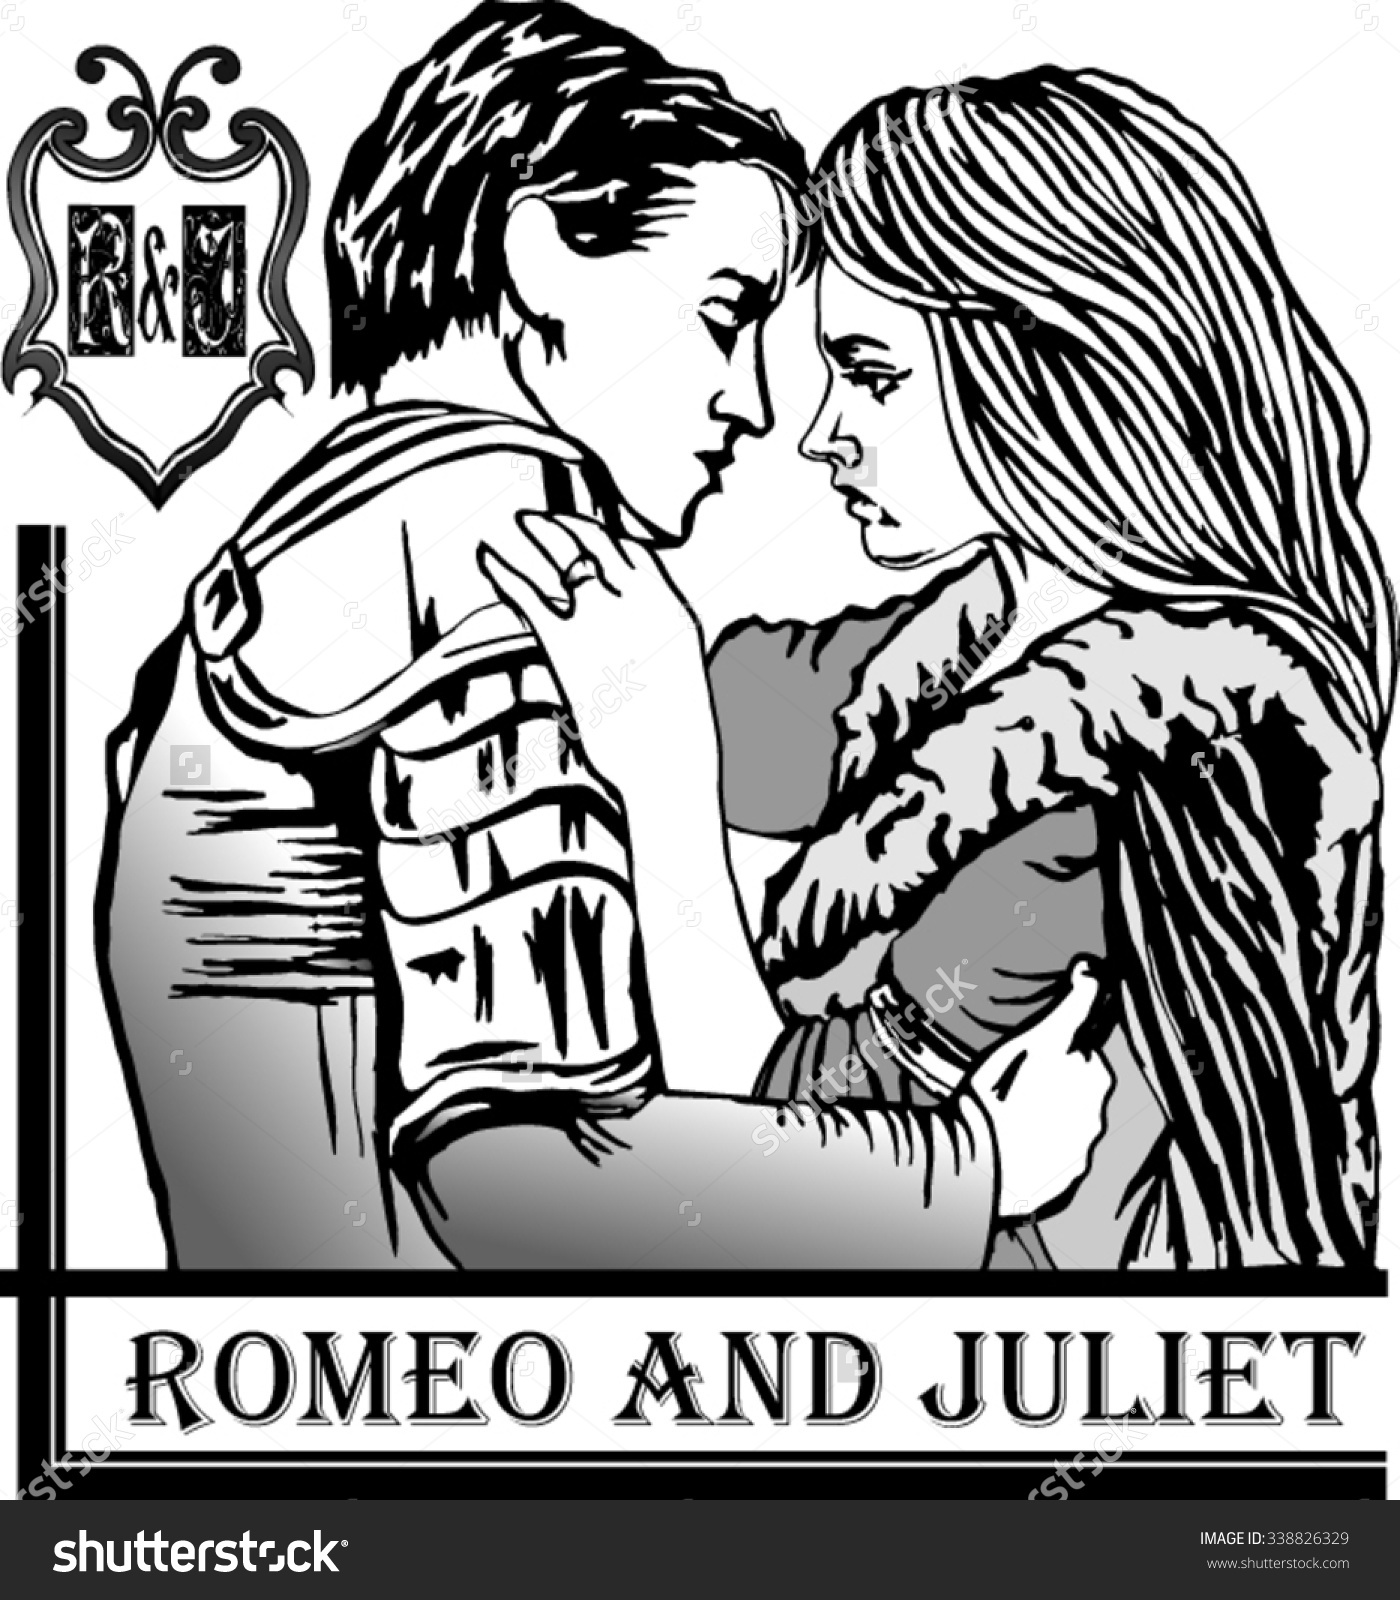 Romeo and juliet clip art clip free library By William Shakespeare Romeo and Juliet Clip Art – Clipart Free ... clip free library